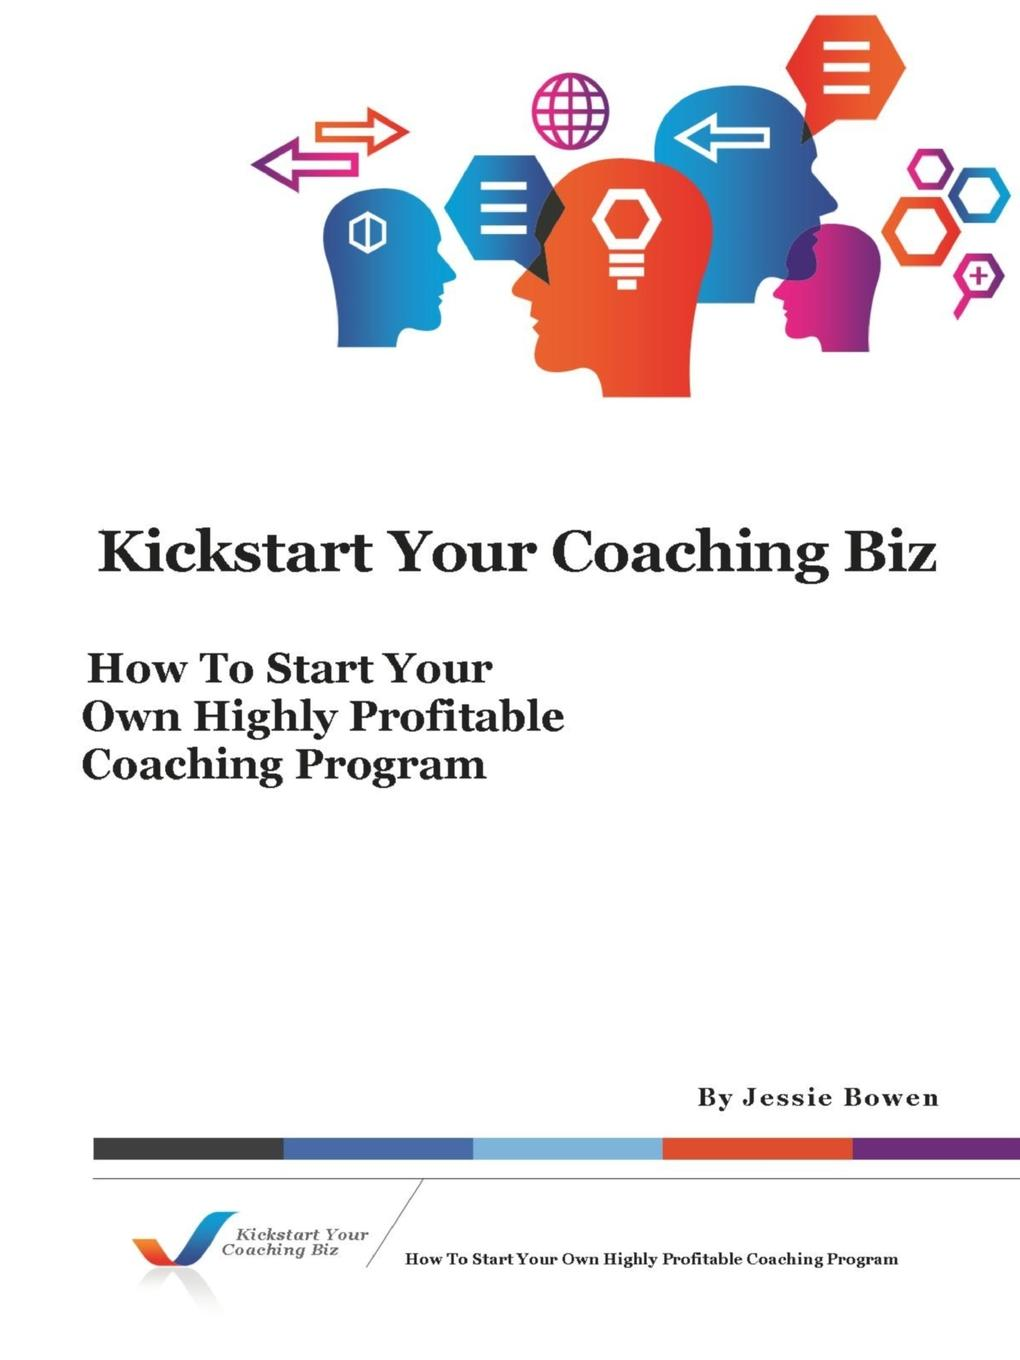 лучшая цена Jessie Bowen Kickstart Your Coaching Biz